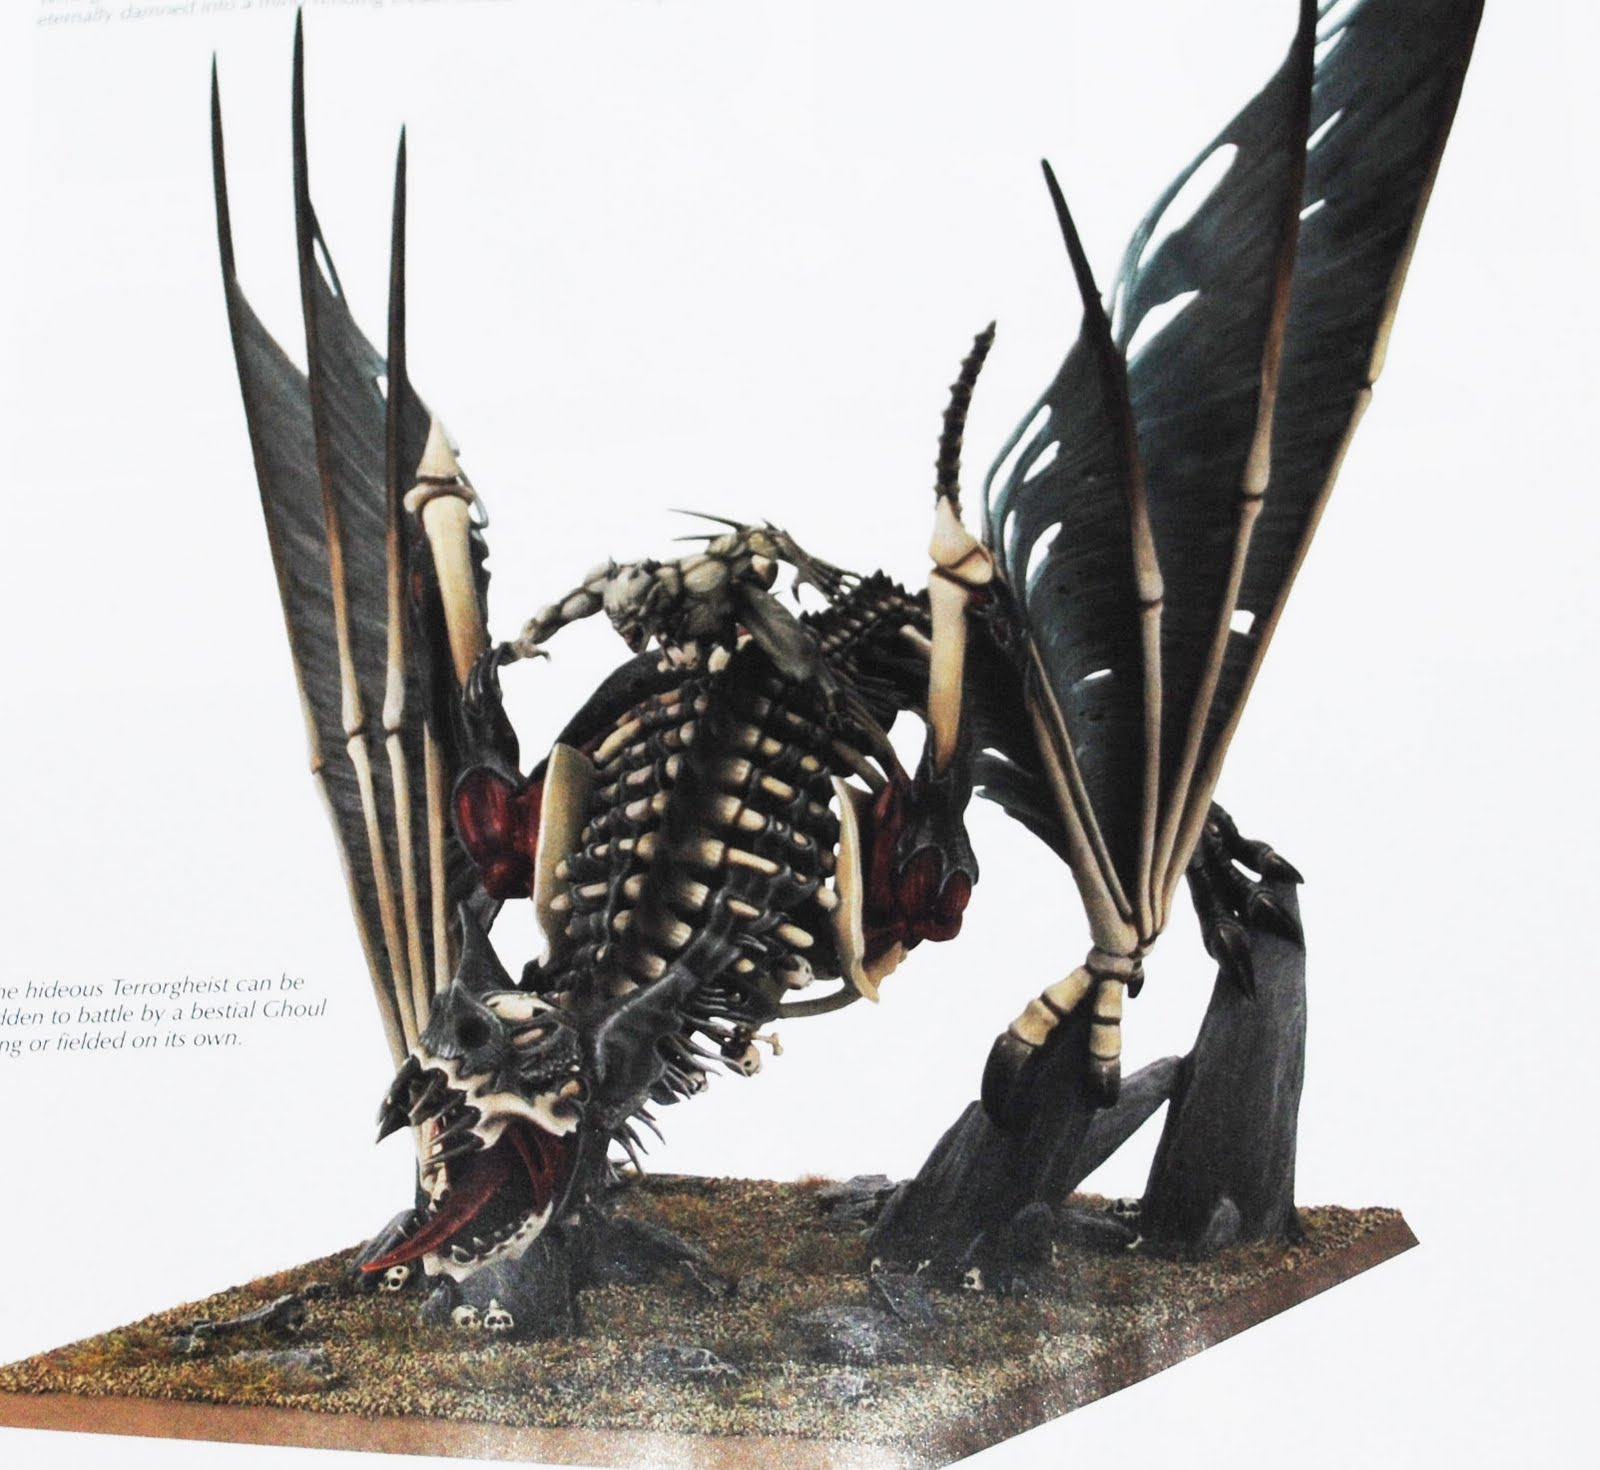 More Warhammer August release photos. - Tabletop Encounters